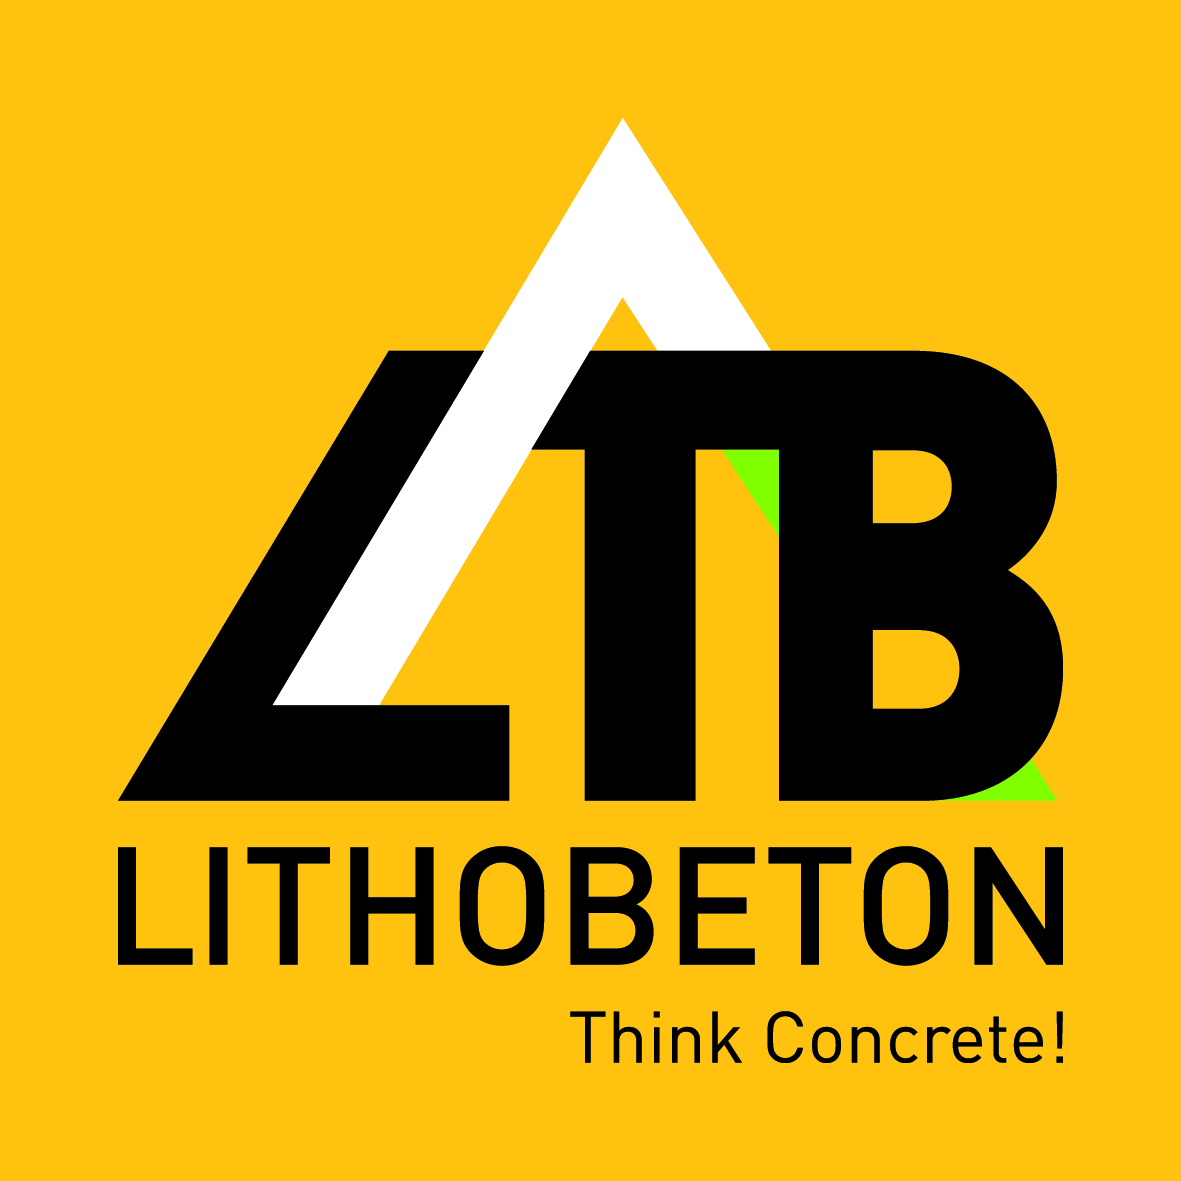 http://www.lithobeton.be/